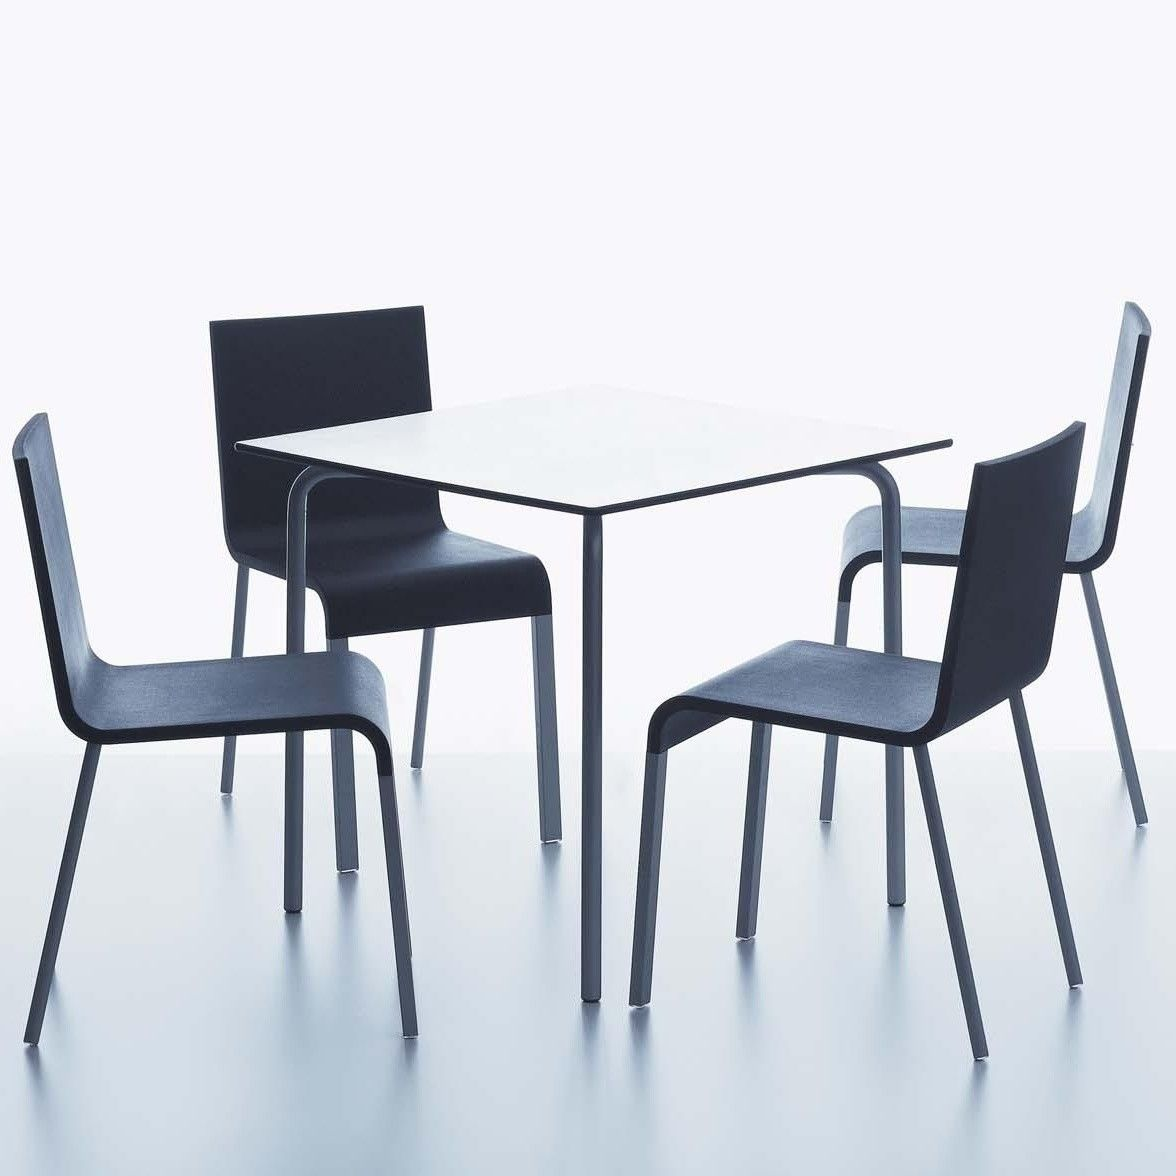 03 Chair not stackable Vitra – Vitra 03 Chair